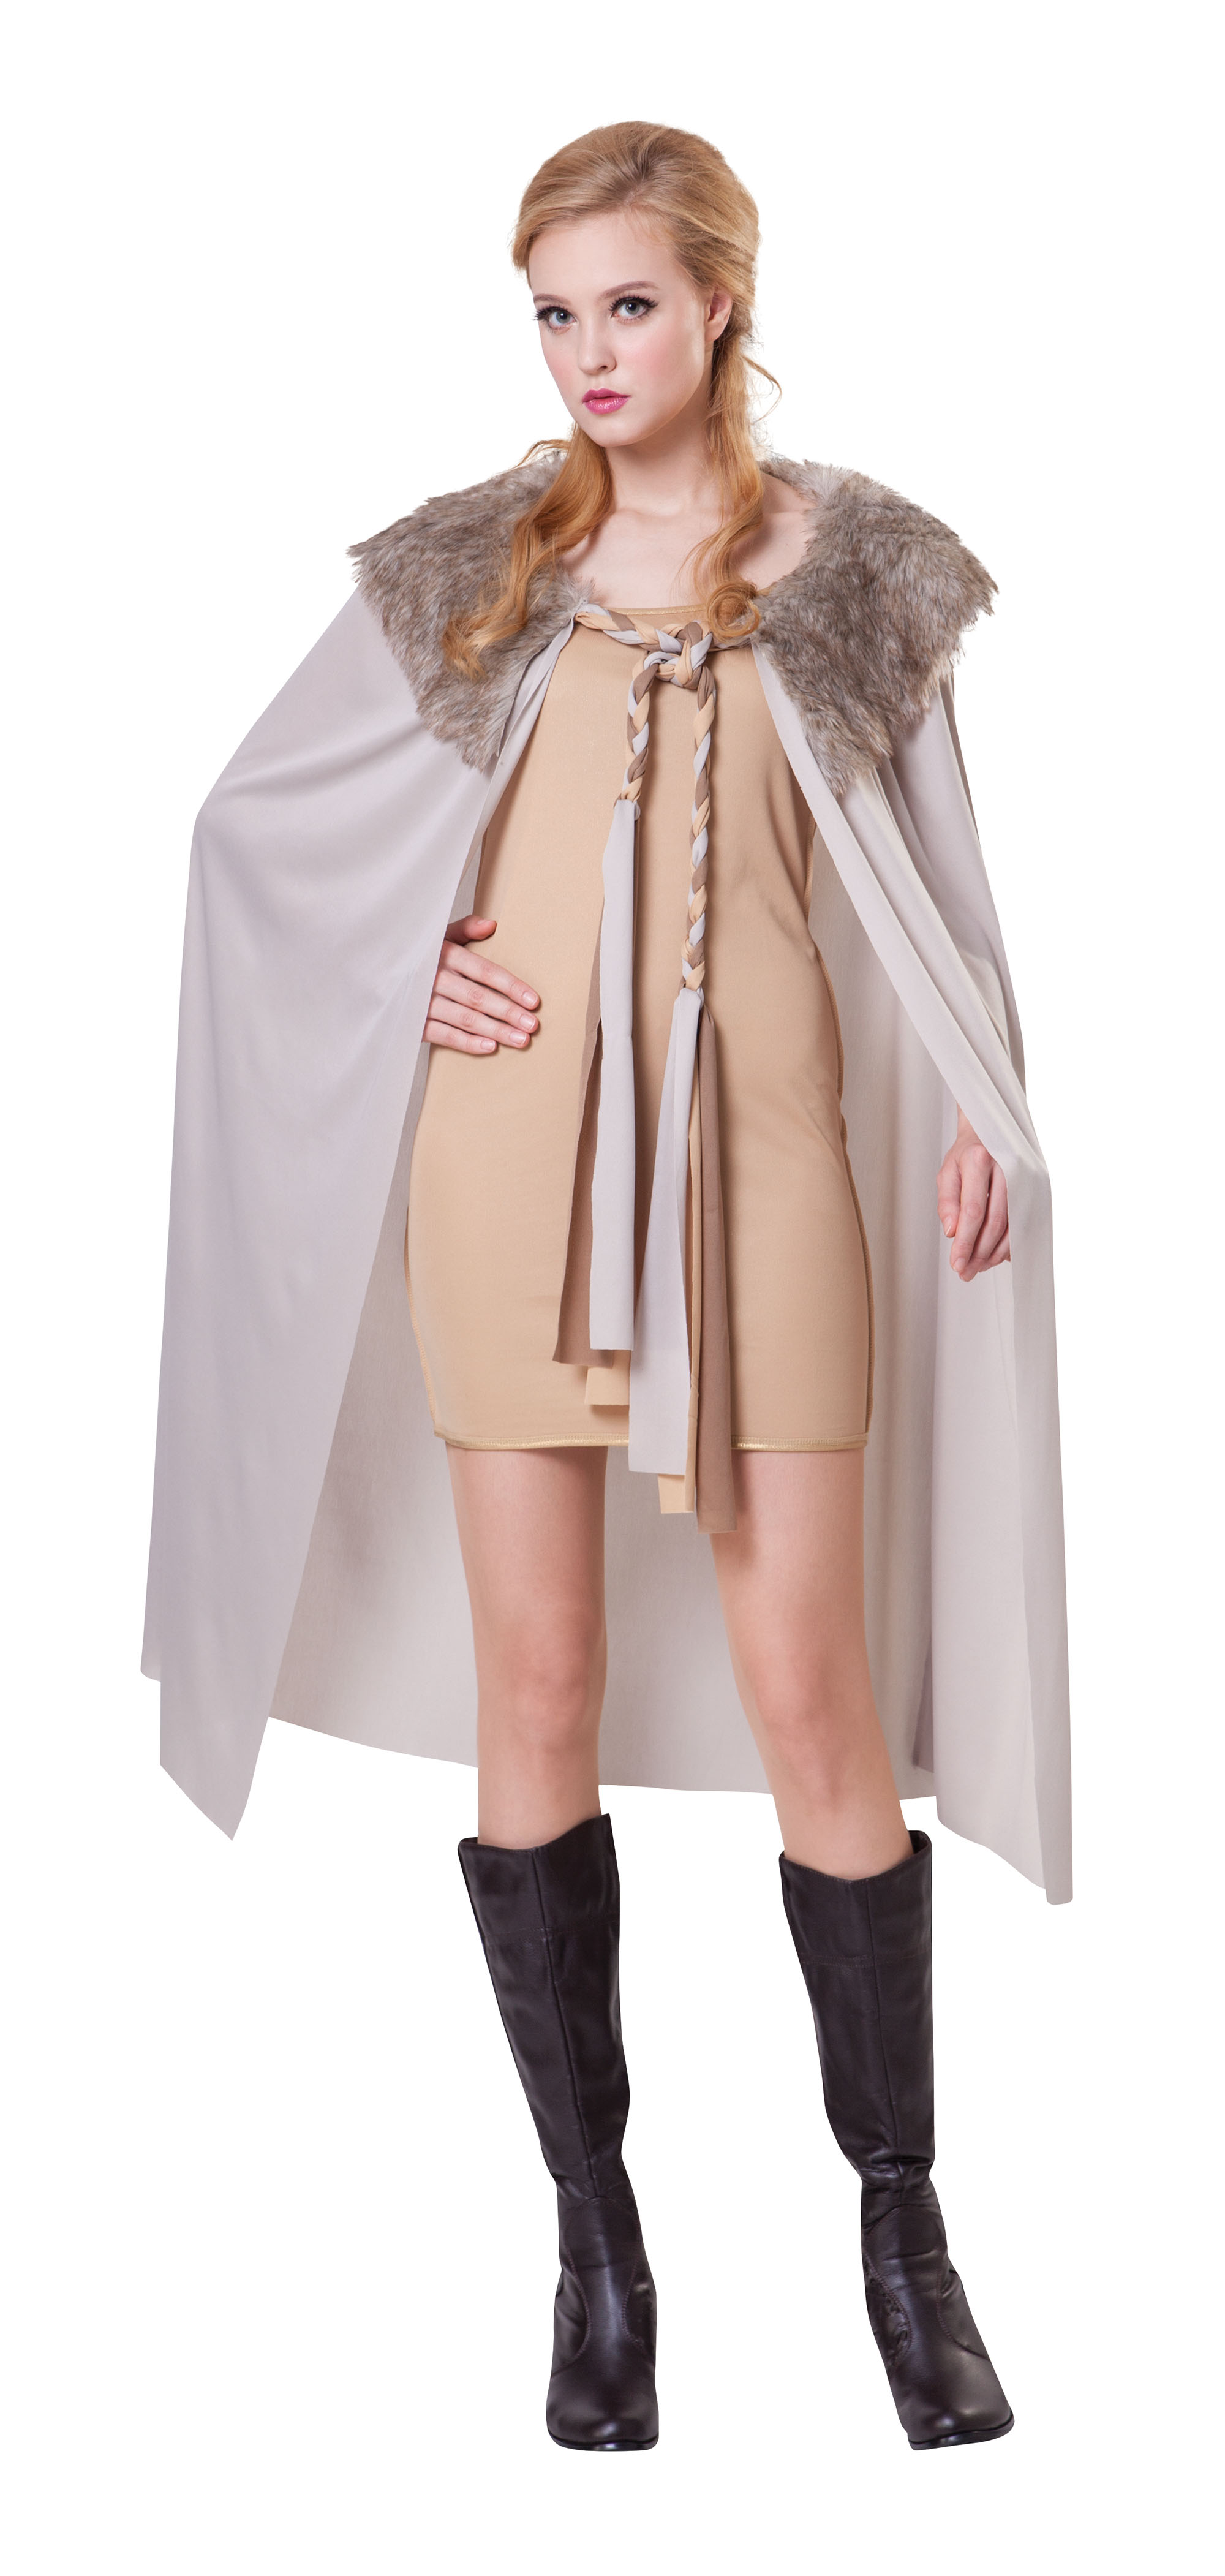 Ladies Short Grey Cape Cloak With Plush Collar Game Of Thrones Fancy Dress Prop